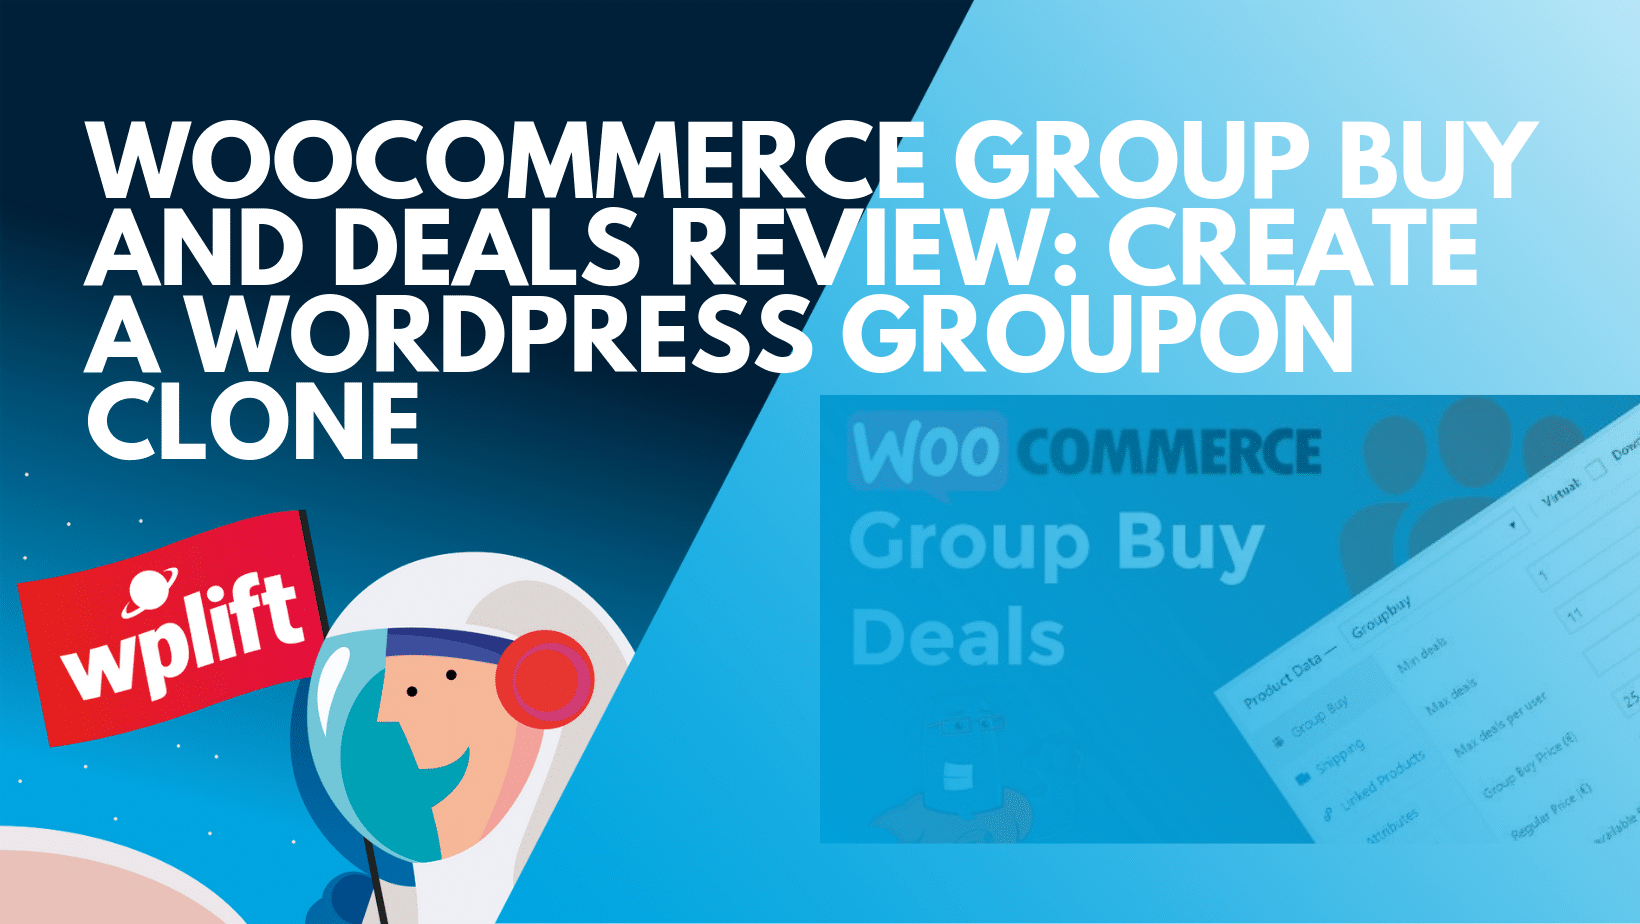 WooCommerce Group Buy and Deals Review: WordPress Groupon Clone